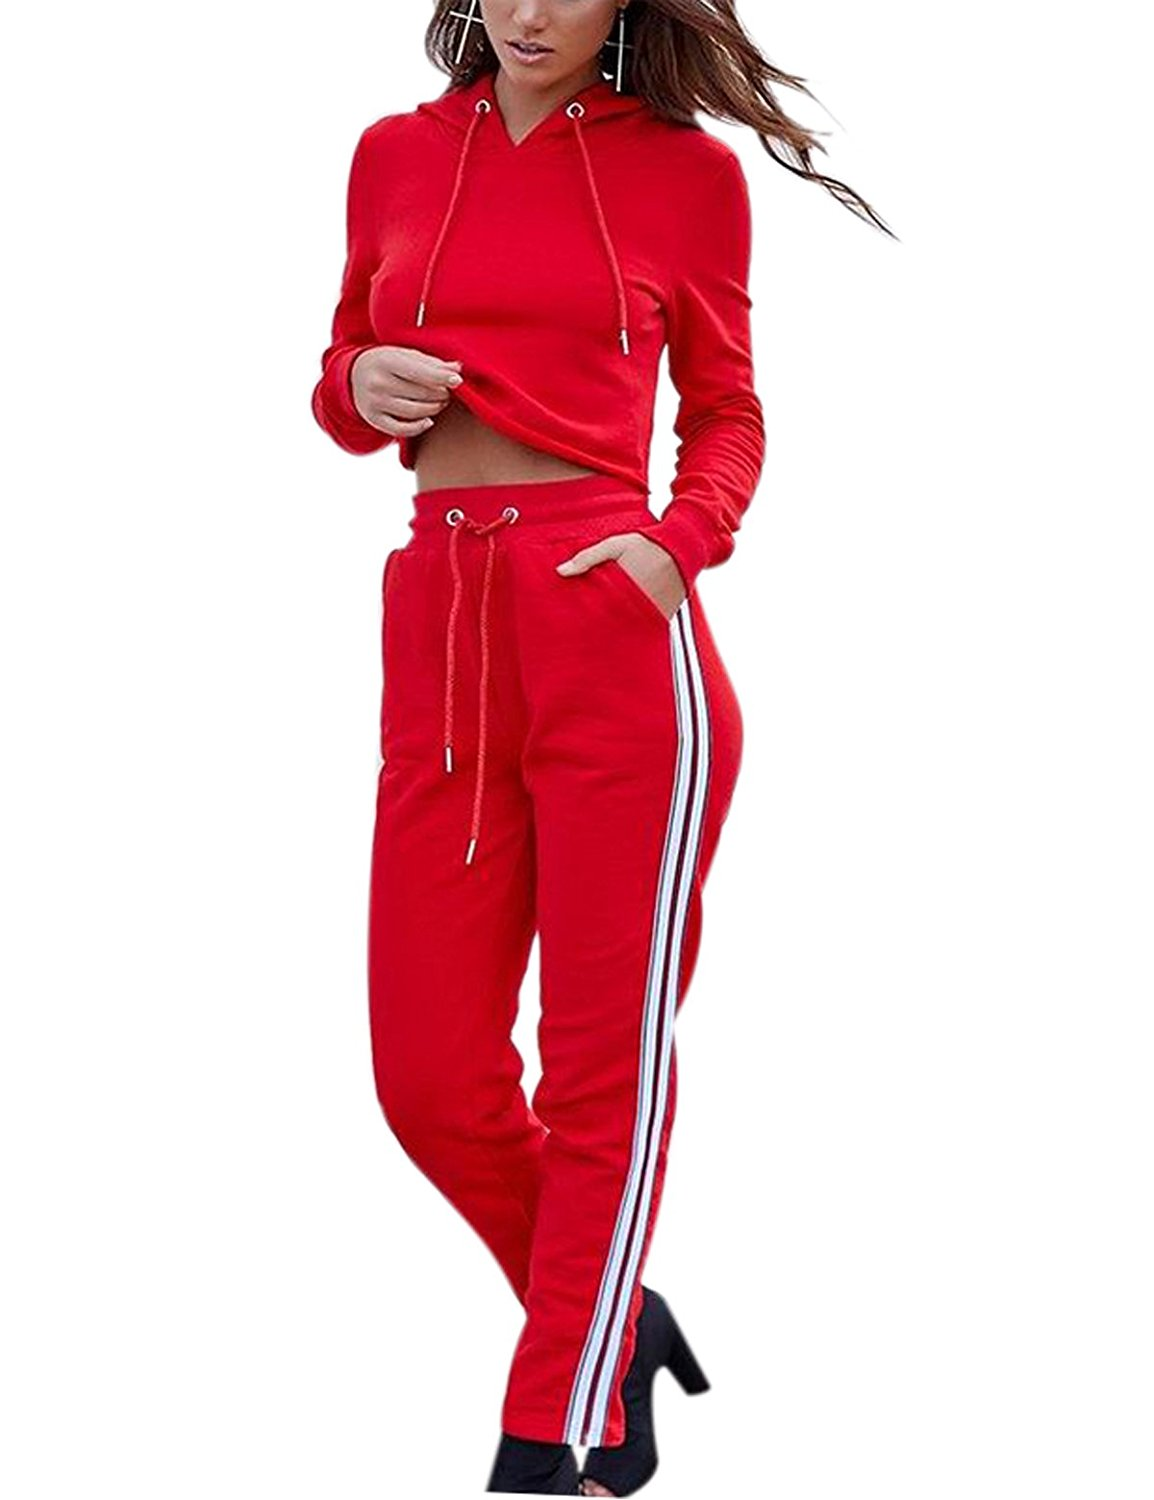 Swmmer Liket Womens Autumn Long Sleeve Hoodie Sports Sweatsuits 2 Piece Set at Amazon Women's Clothing store: